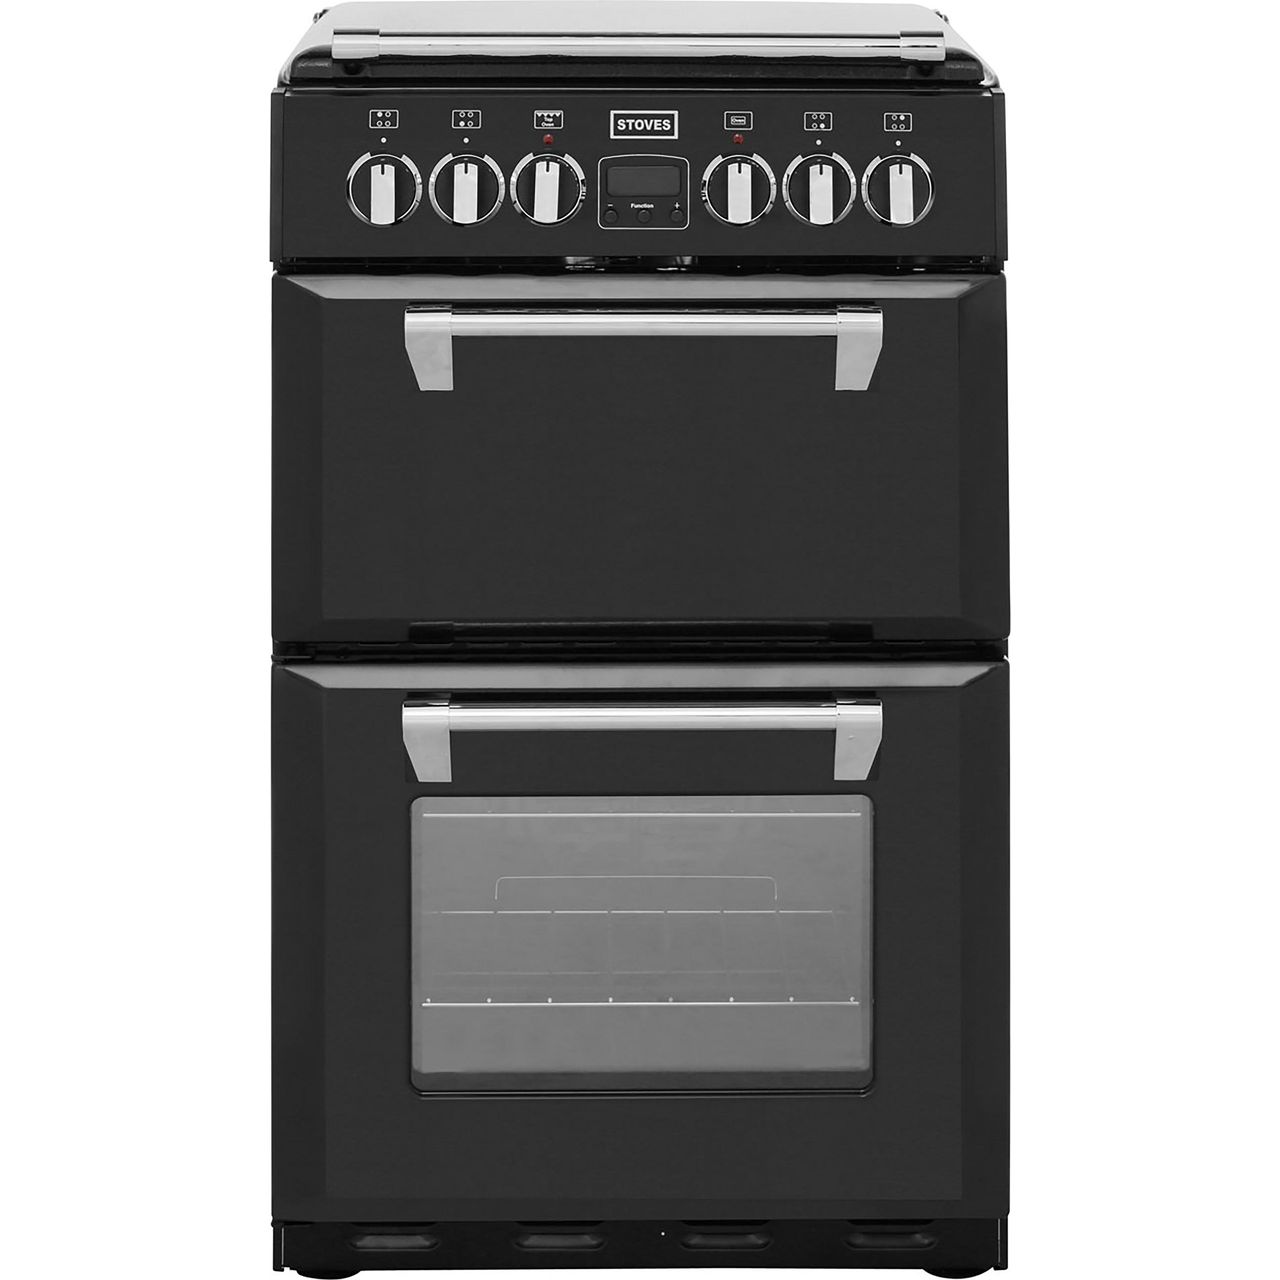 richmond550e bk stoves electric cooker. Black Bedroom Furniture Sets. Home Design Ideas